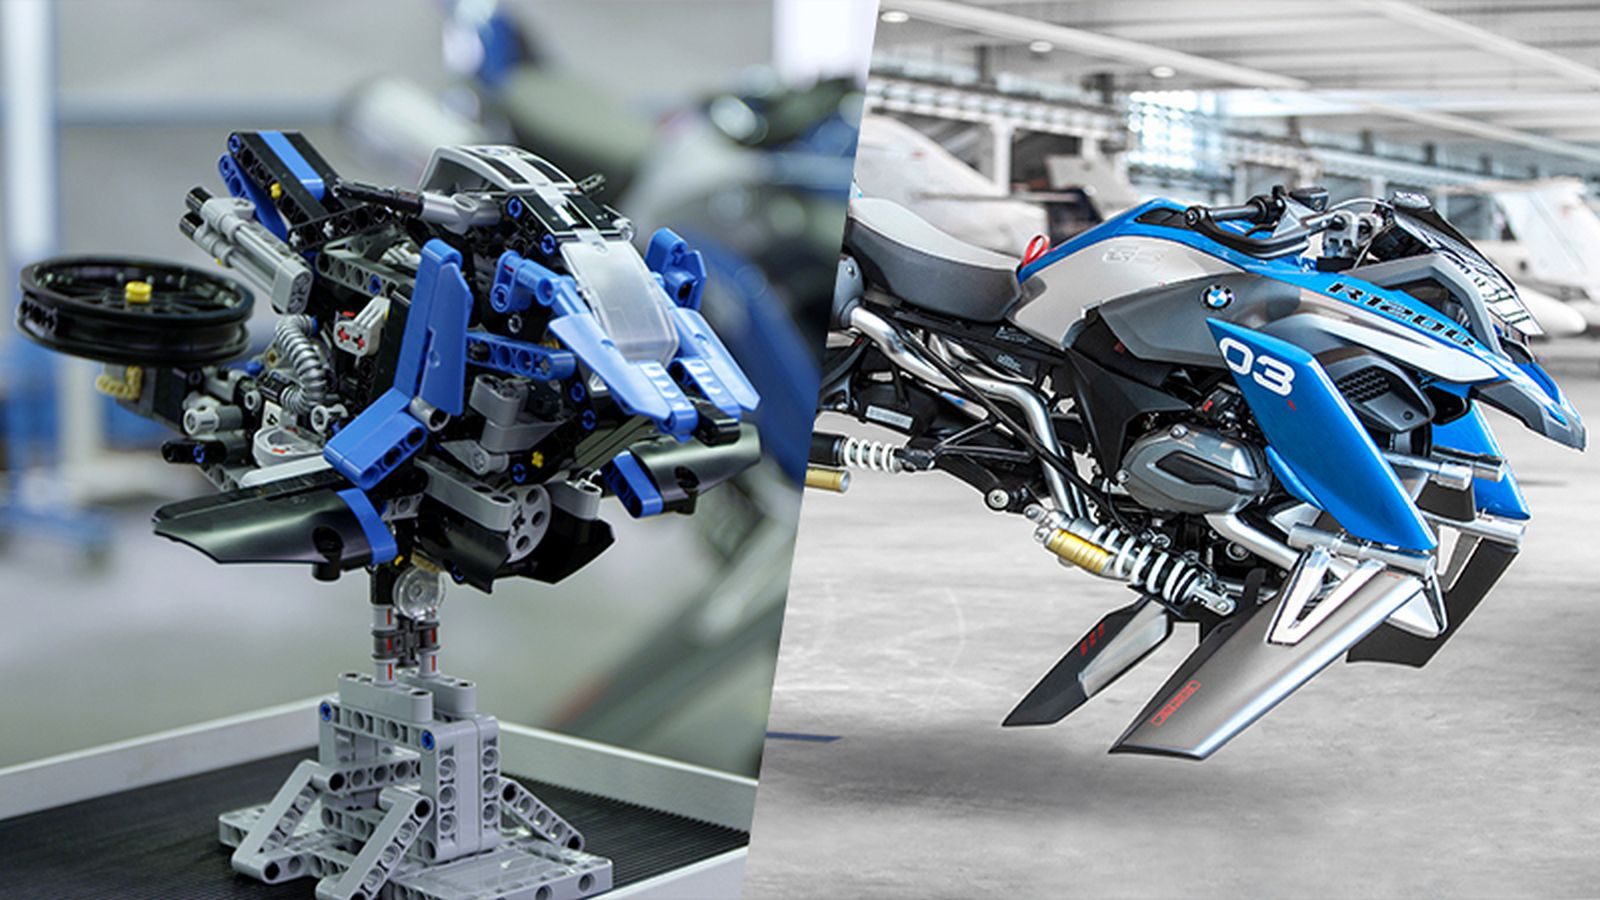 Bmw Creates Fantastic Flying Motorcycle Concept Inspired By Lego Model